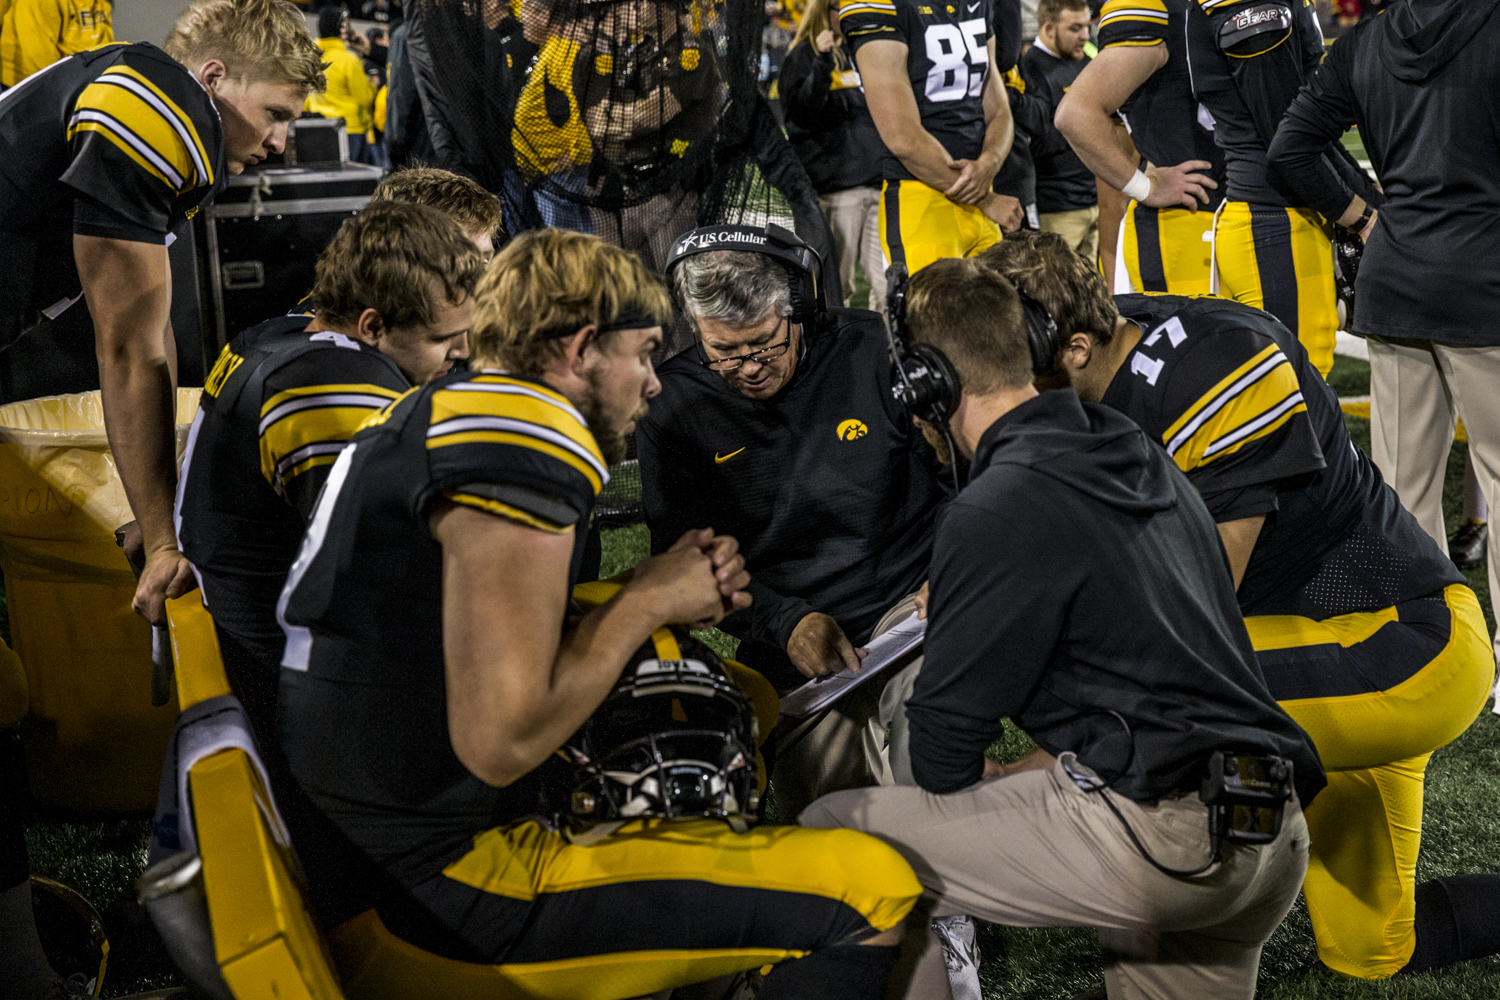 Iowa+quarterbacks+coach+Ken+O%27Keefe+delivers+instructions+during+Iowa%27s+game+against+Wisconsin+at+Kinnick+Stadium+on+Saturday%2C+September+22%2C+2018.+The+Badgers+defeated+the+Hawkeyes+28-17.